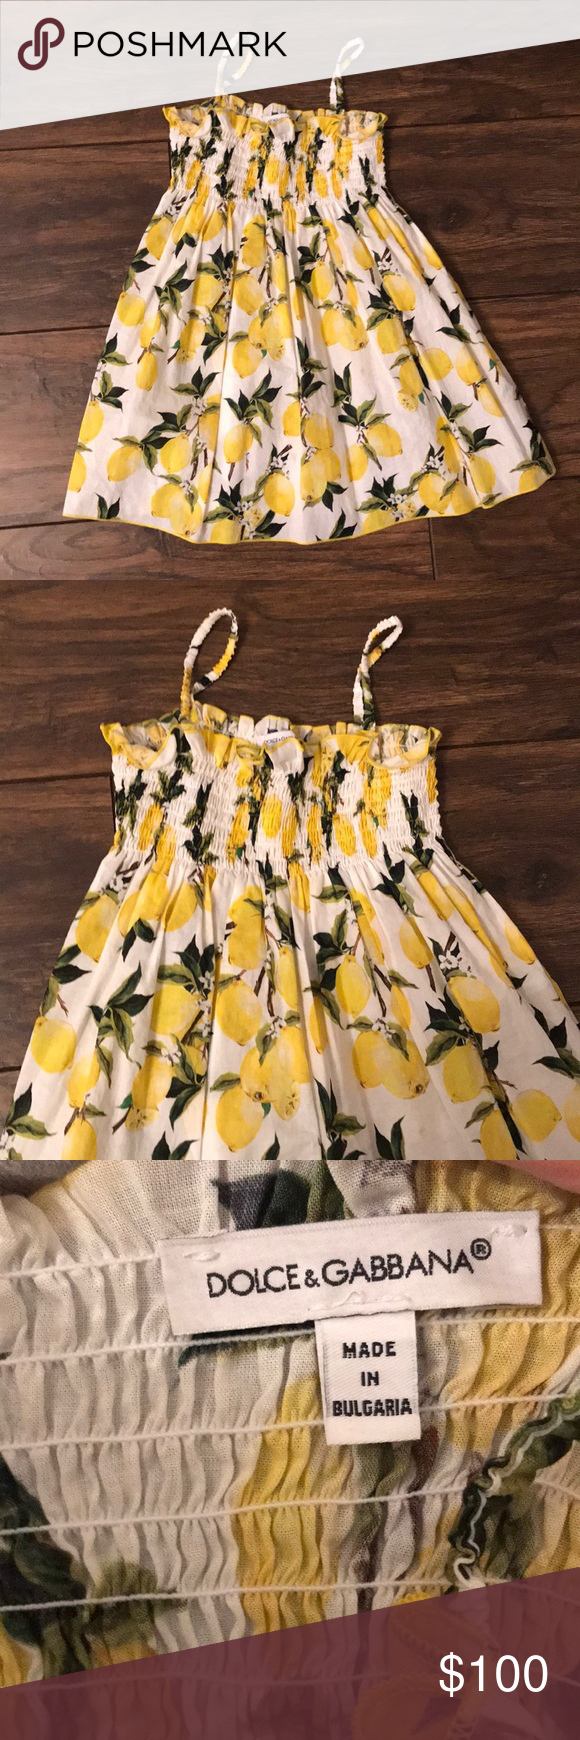 49080c364b40 Little girls Dolce and Gabbana dress Lemon print spaghetti strap dress.  Pricing reflects condition, sold as is. Dolce & Gabbana Dresses